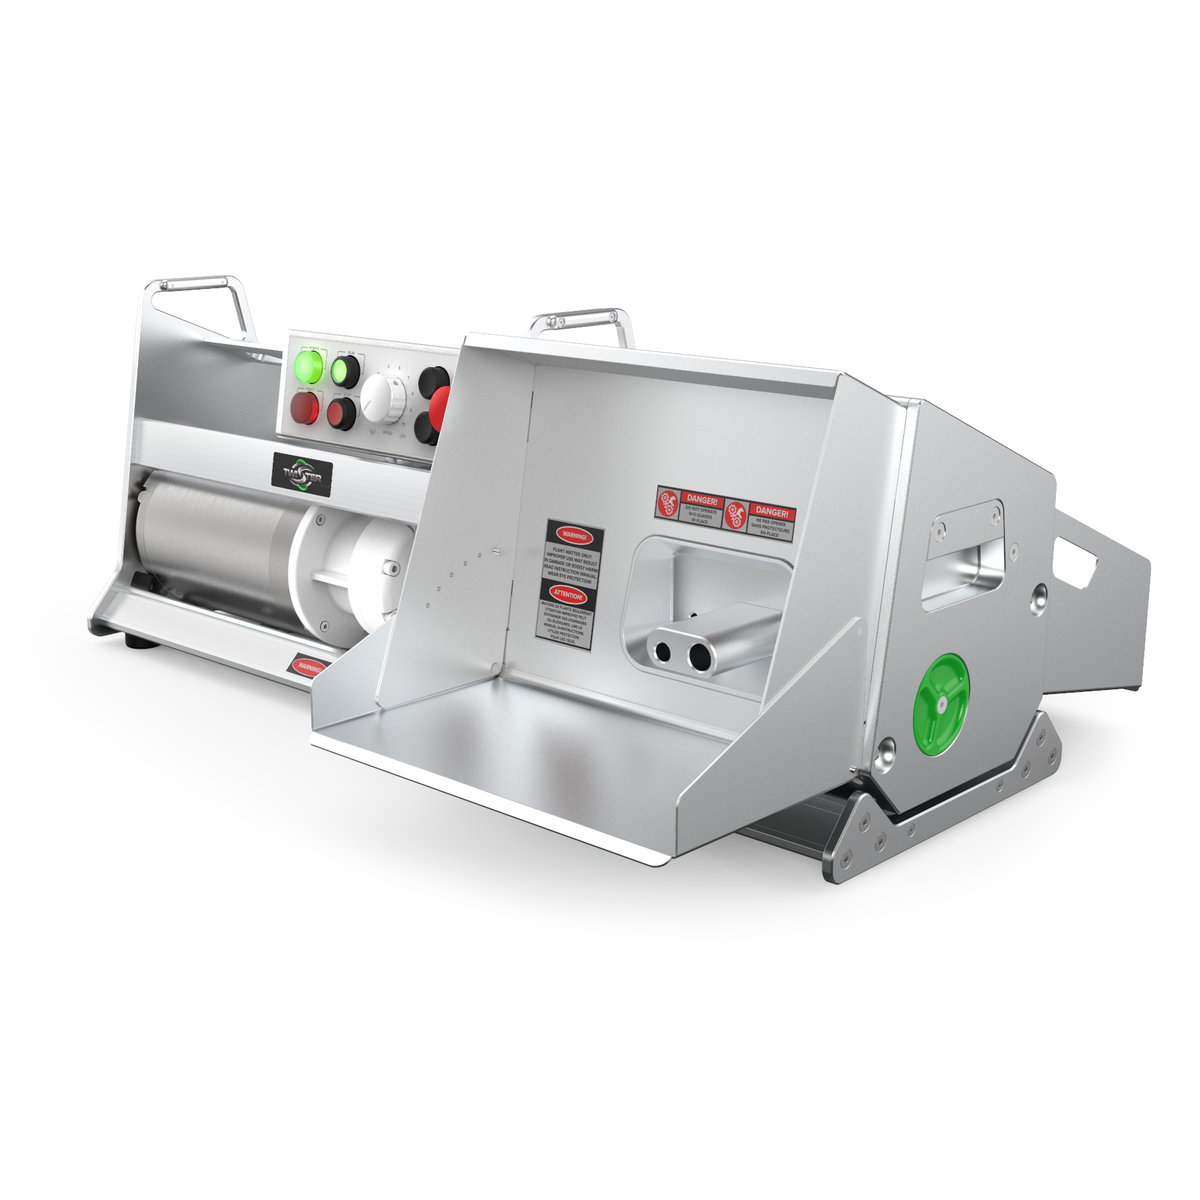 Twister B4 Bucker Hemp Debudder & Bucking Machine